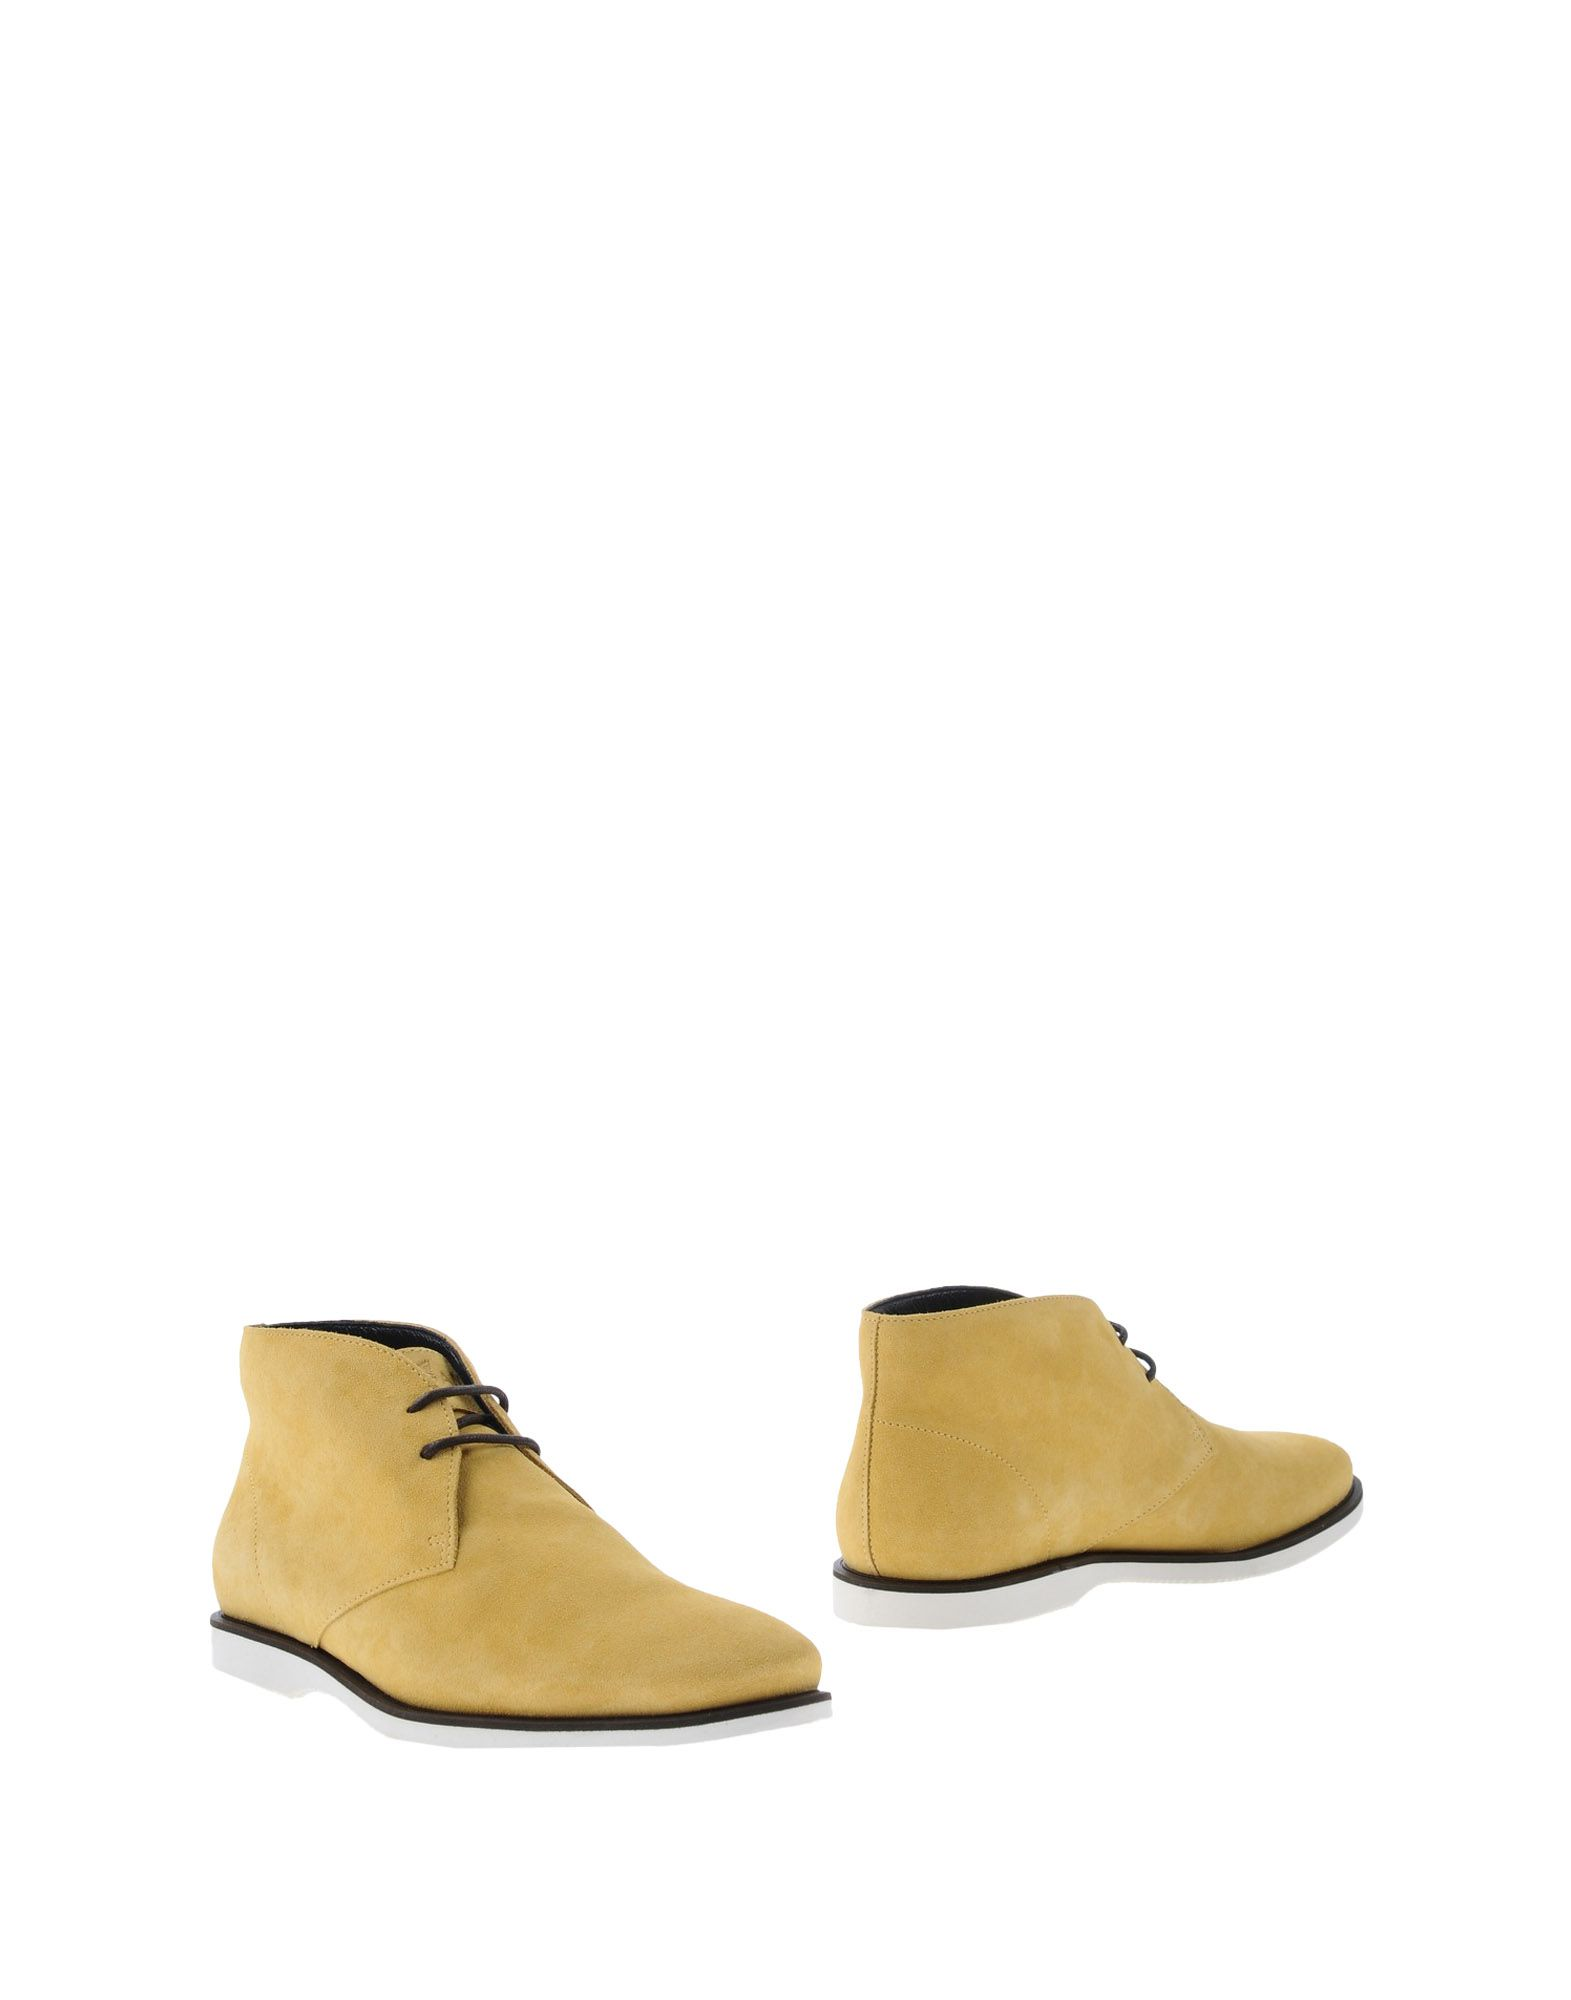 Bottine Hogan Homme - Bottines Hogan sur